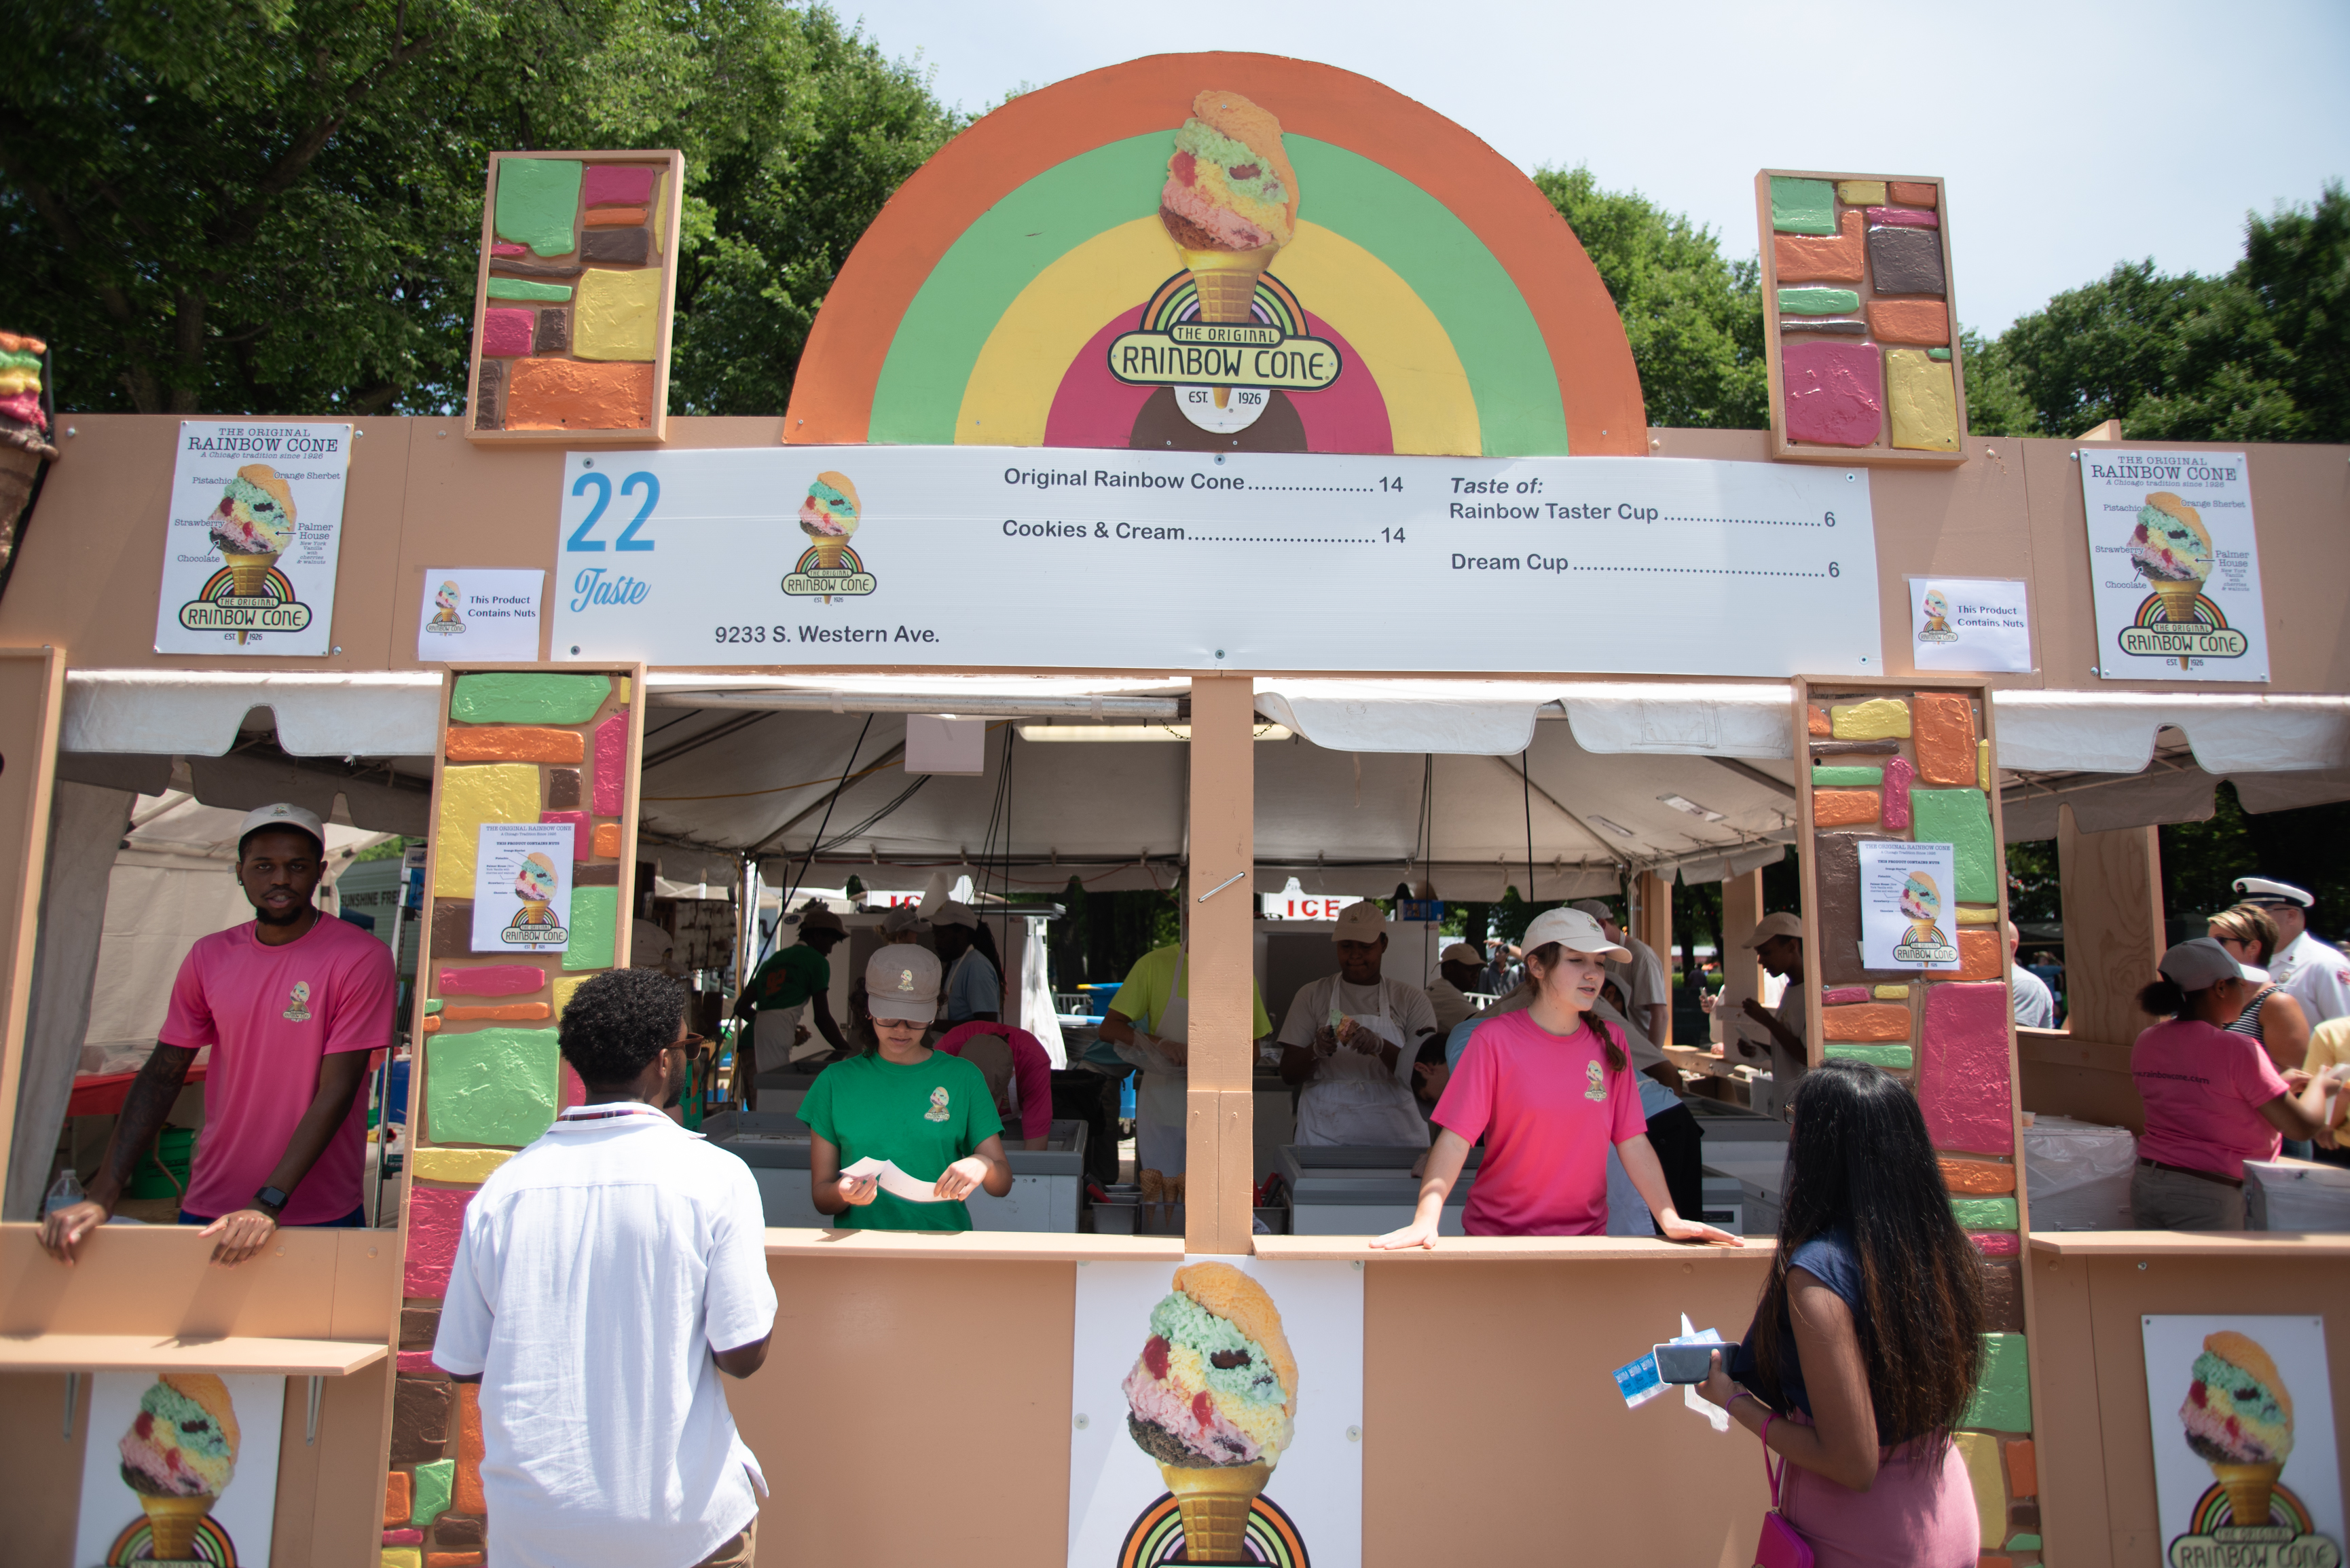 People being served at Rainbow Cone's stand at Taste of Chicago on July 11, 2018.